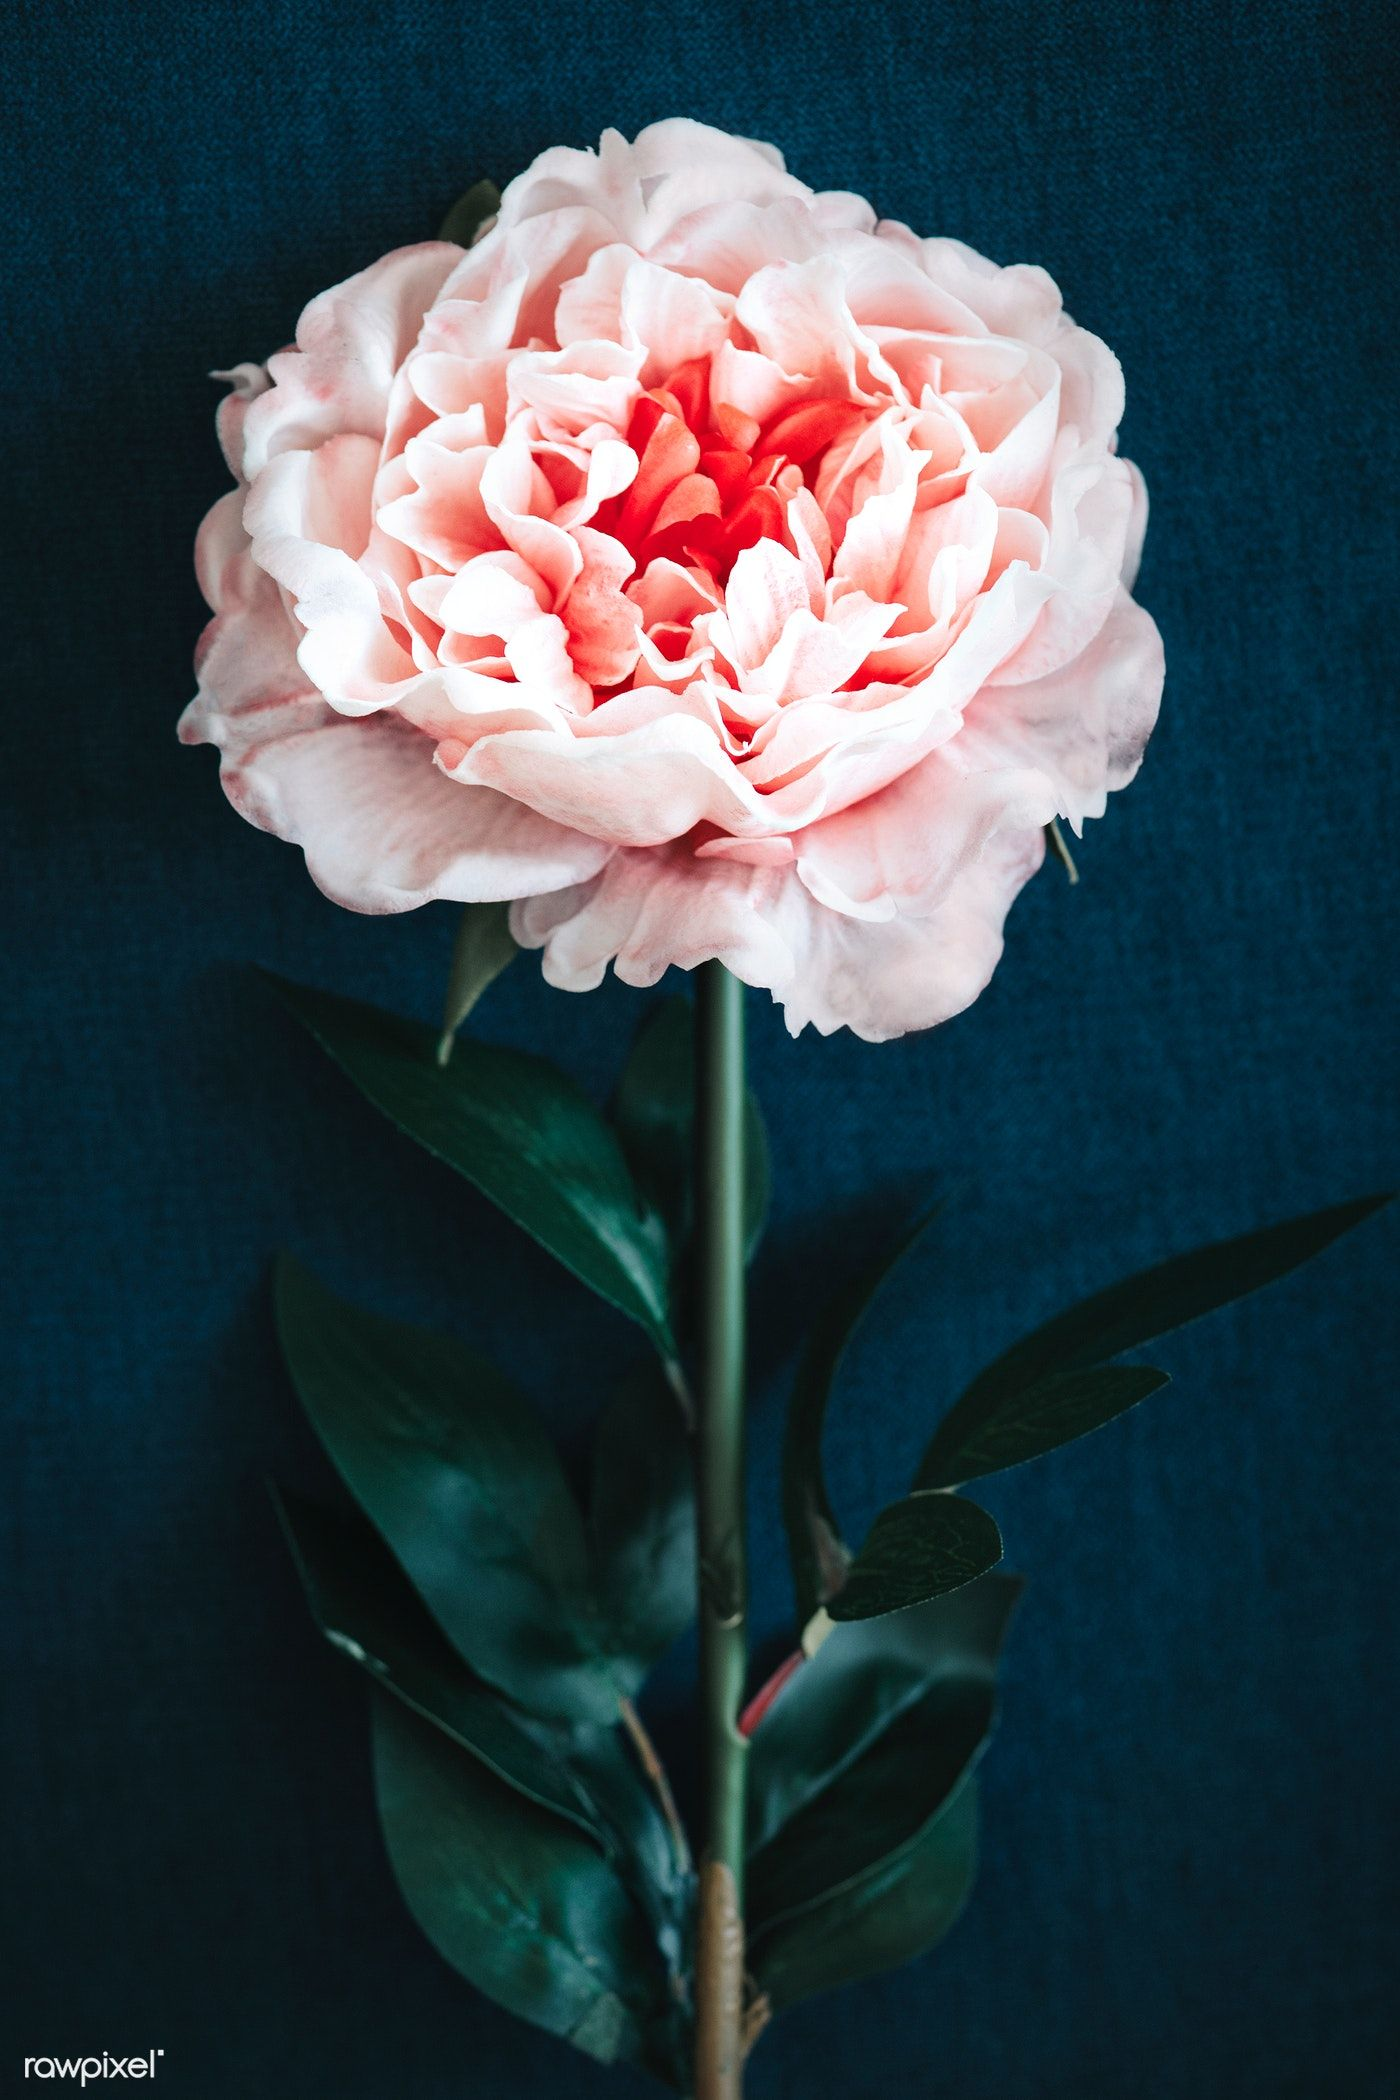 Download premium photo of Pink peony on blue background